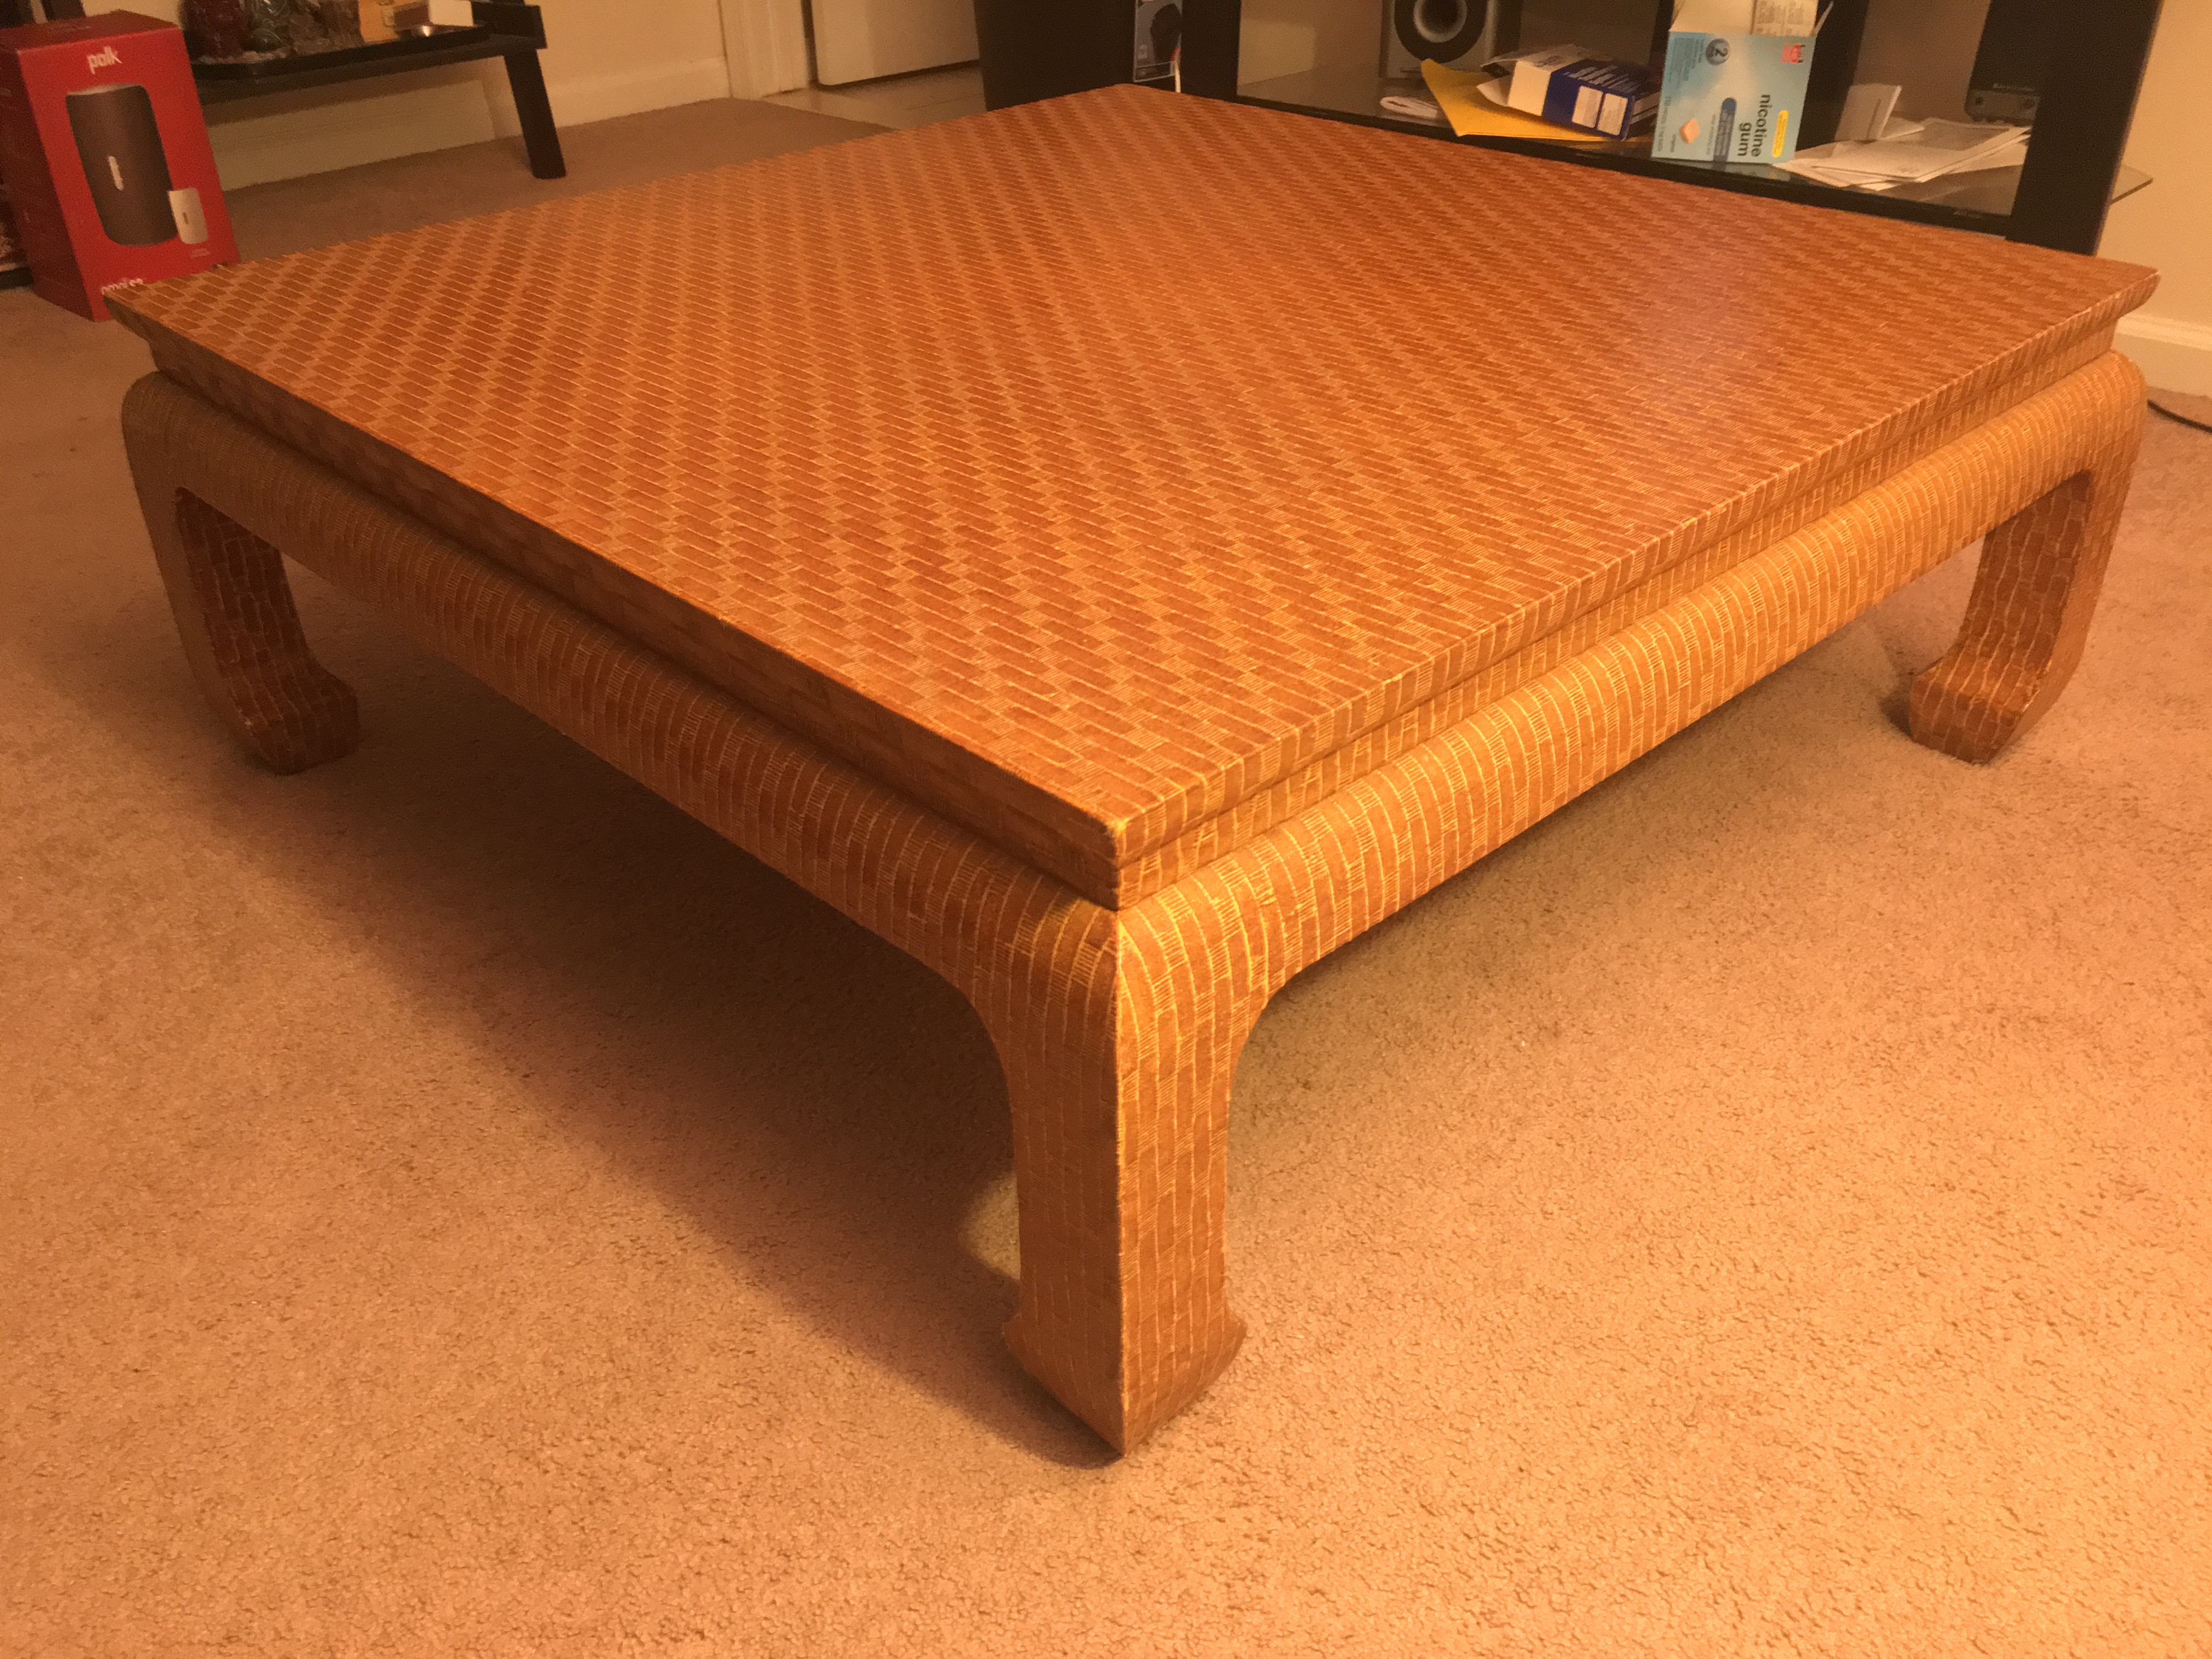 A Vintage Coffee Table, In The Style Of Karl Springer, Produced In The  1970s By Baker Furniture Company. Entirely In Grasscloth, This Piece Was  Designed ...